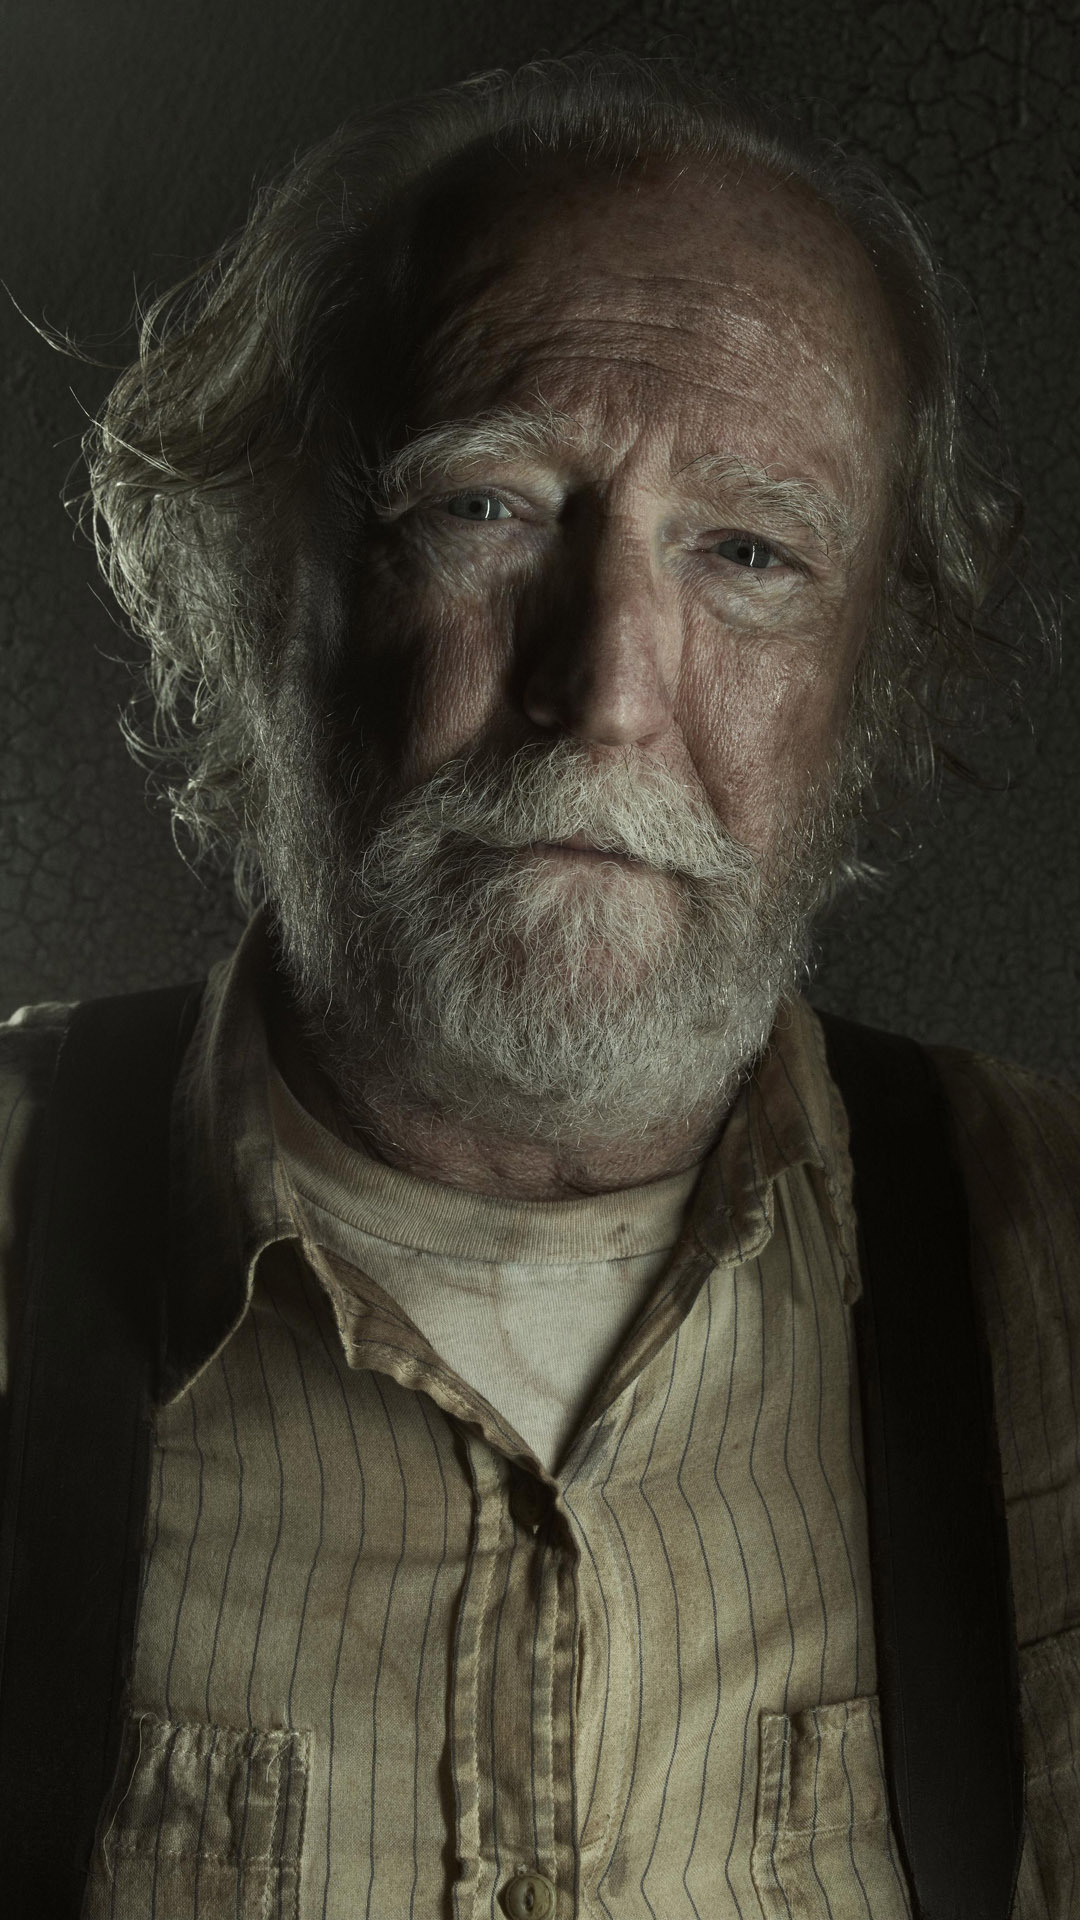 hershel-greene-the-walking-dead-tv-show-mobile-wallpaper-1080x1920-13177-1933044910